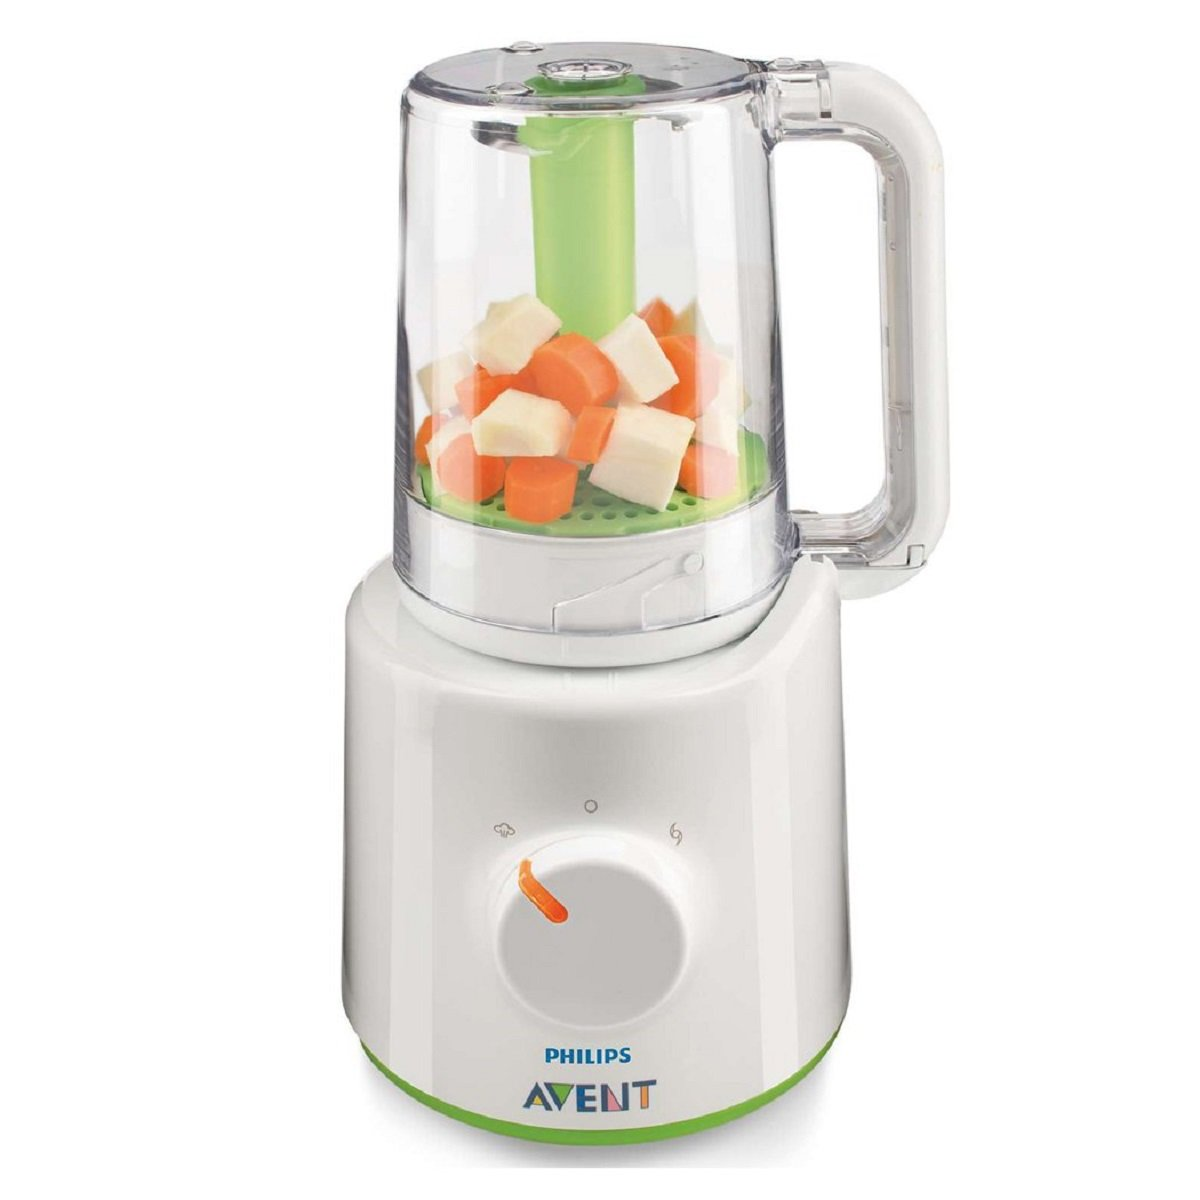 Philips AVENT Combined Baby Food Steamer and Blender, White SCF870/21 Phillips baby food maker weaning